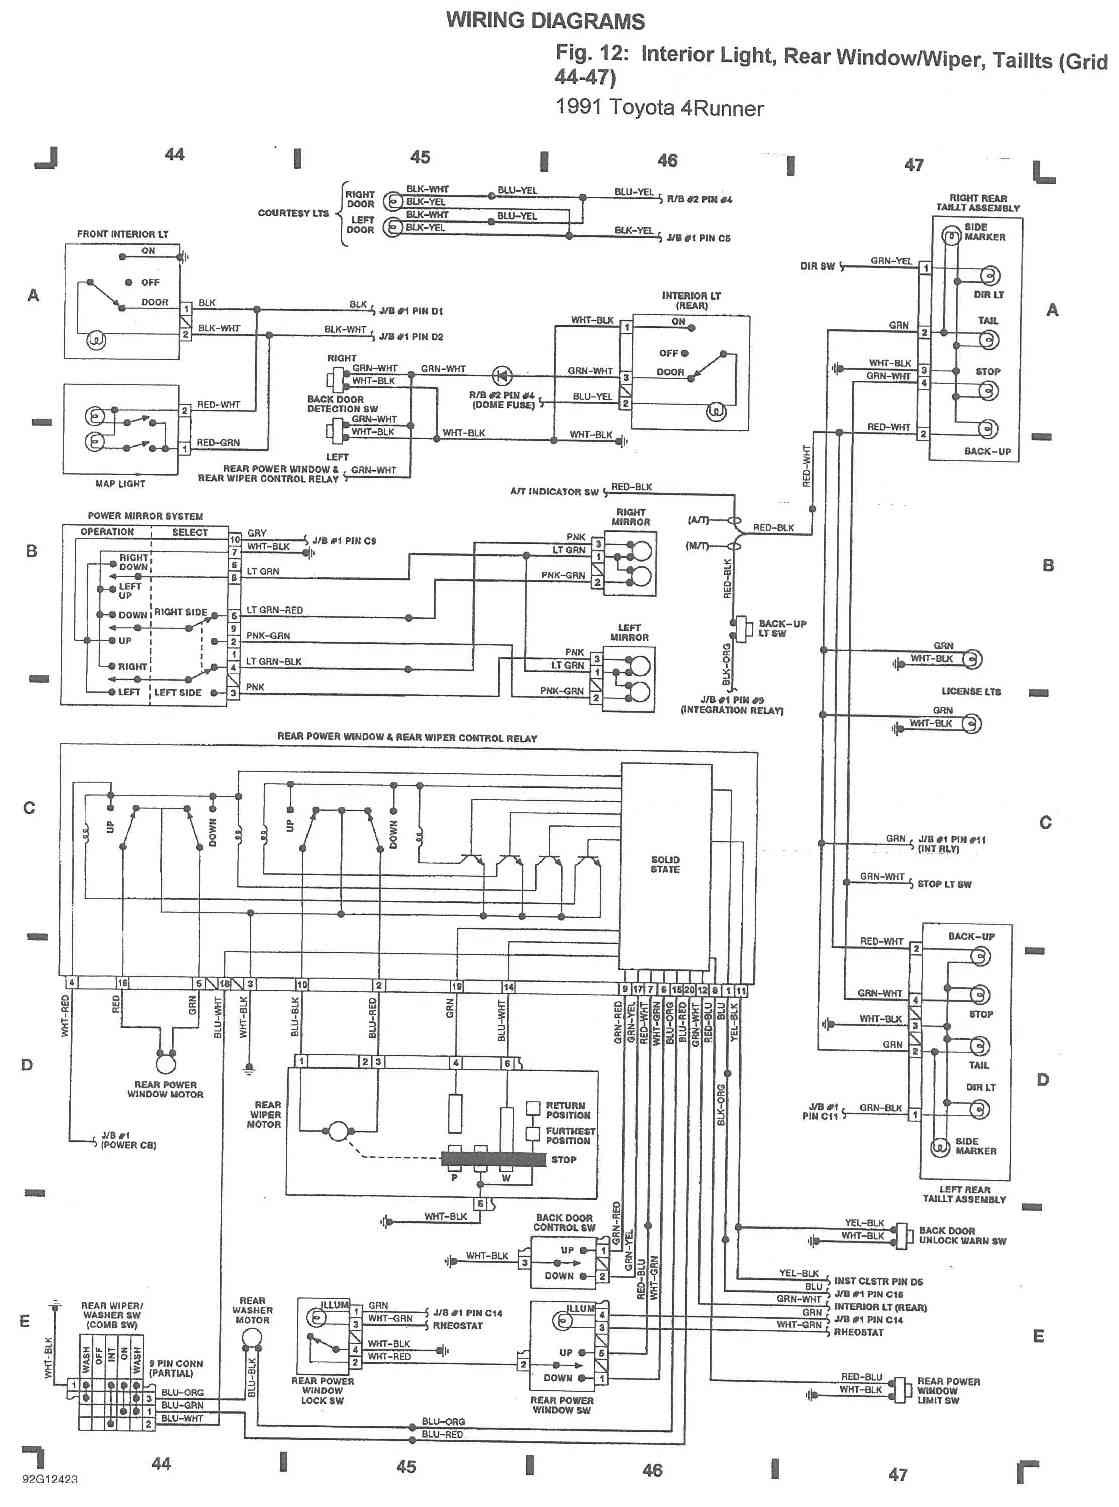 Pleasing Back Window Wiring Diagram Hilux Surf 4Runner Forum Wiring Cloud Pendufoxcilixyz